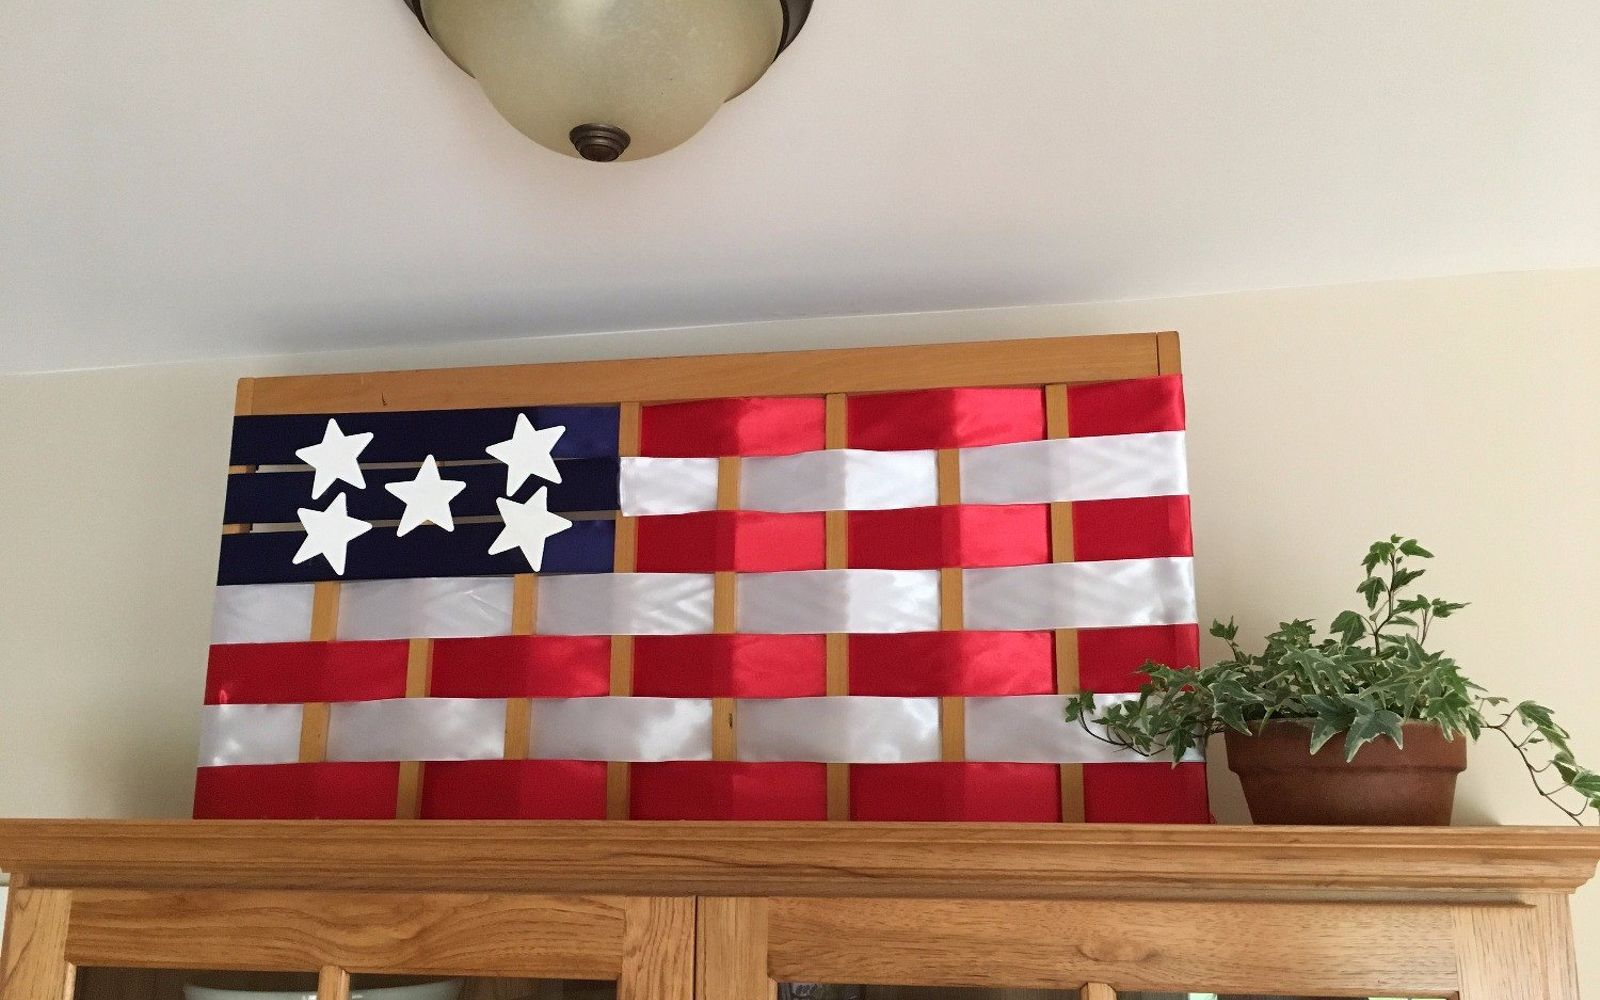 s 10 patriotic projects perfect for your fourth of july party, Repurpose A Gate Into A Giant Flag